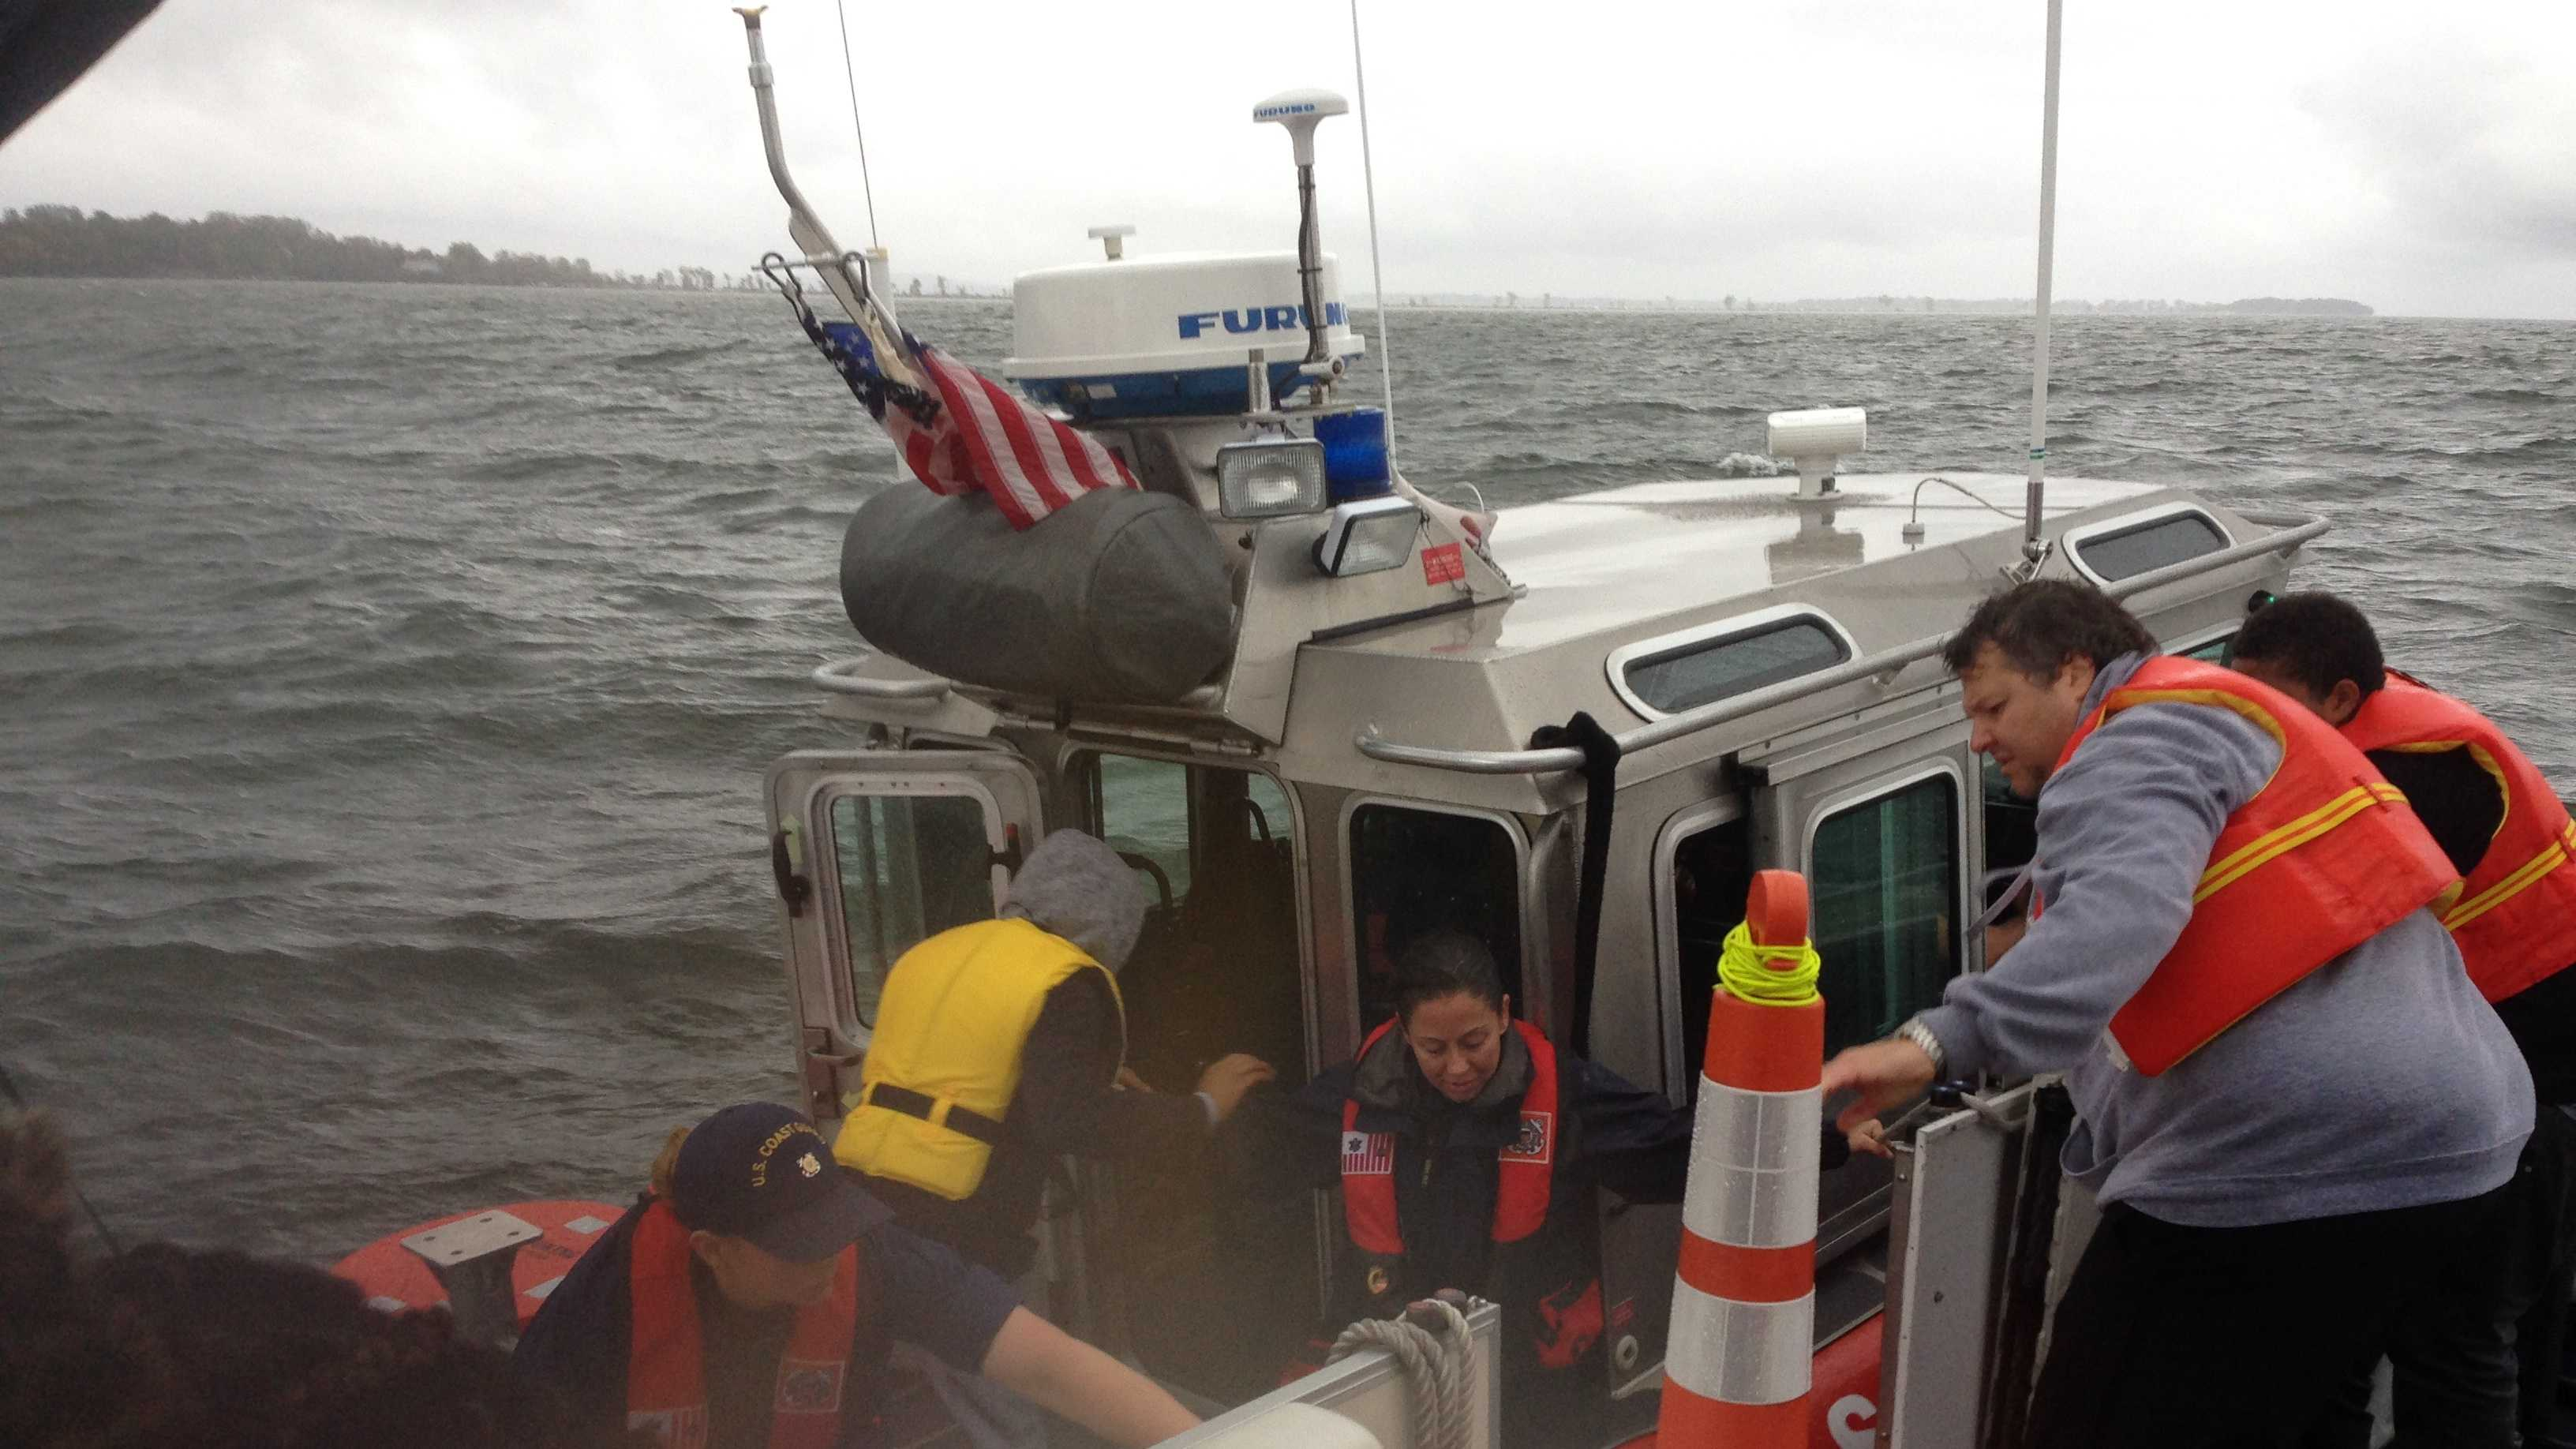 10-6-13 Family rescued on Lake Champlain - img